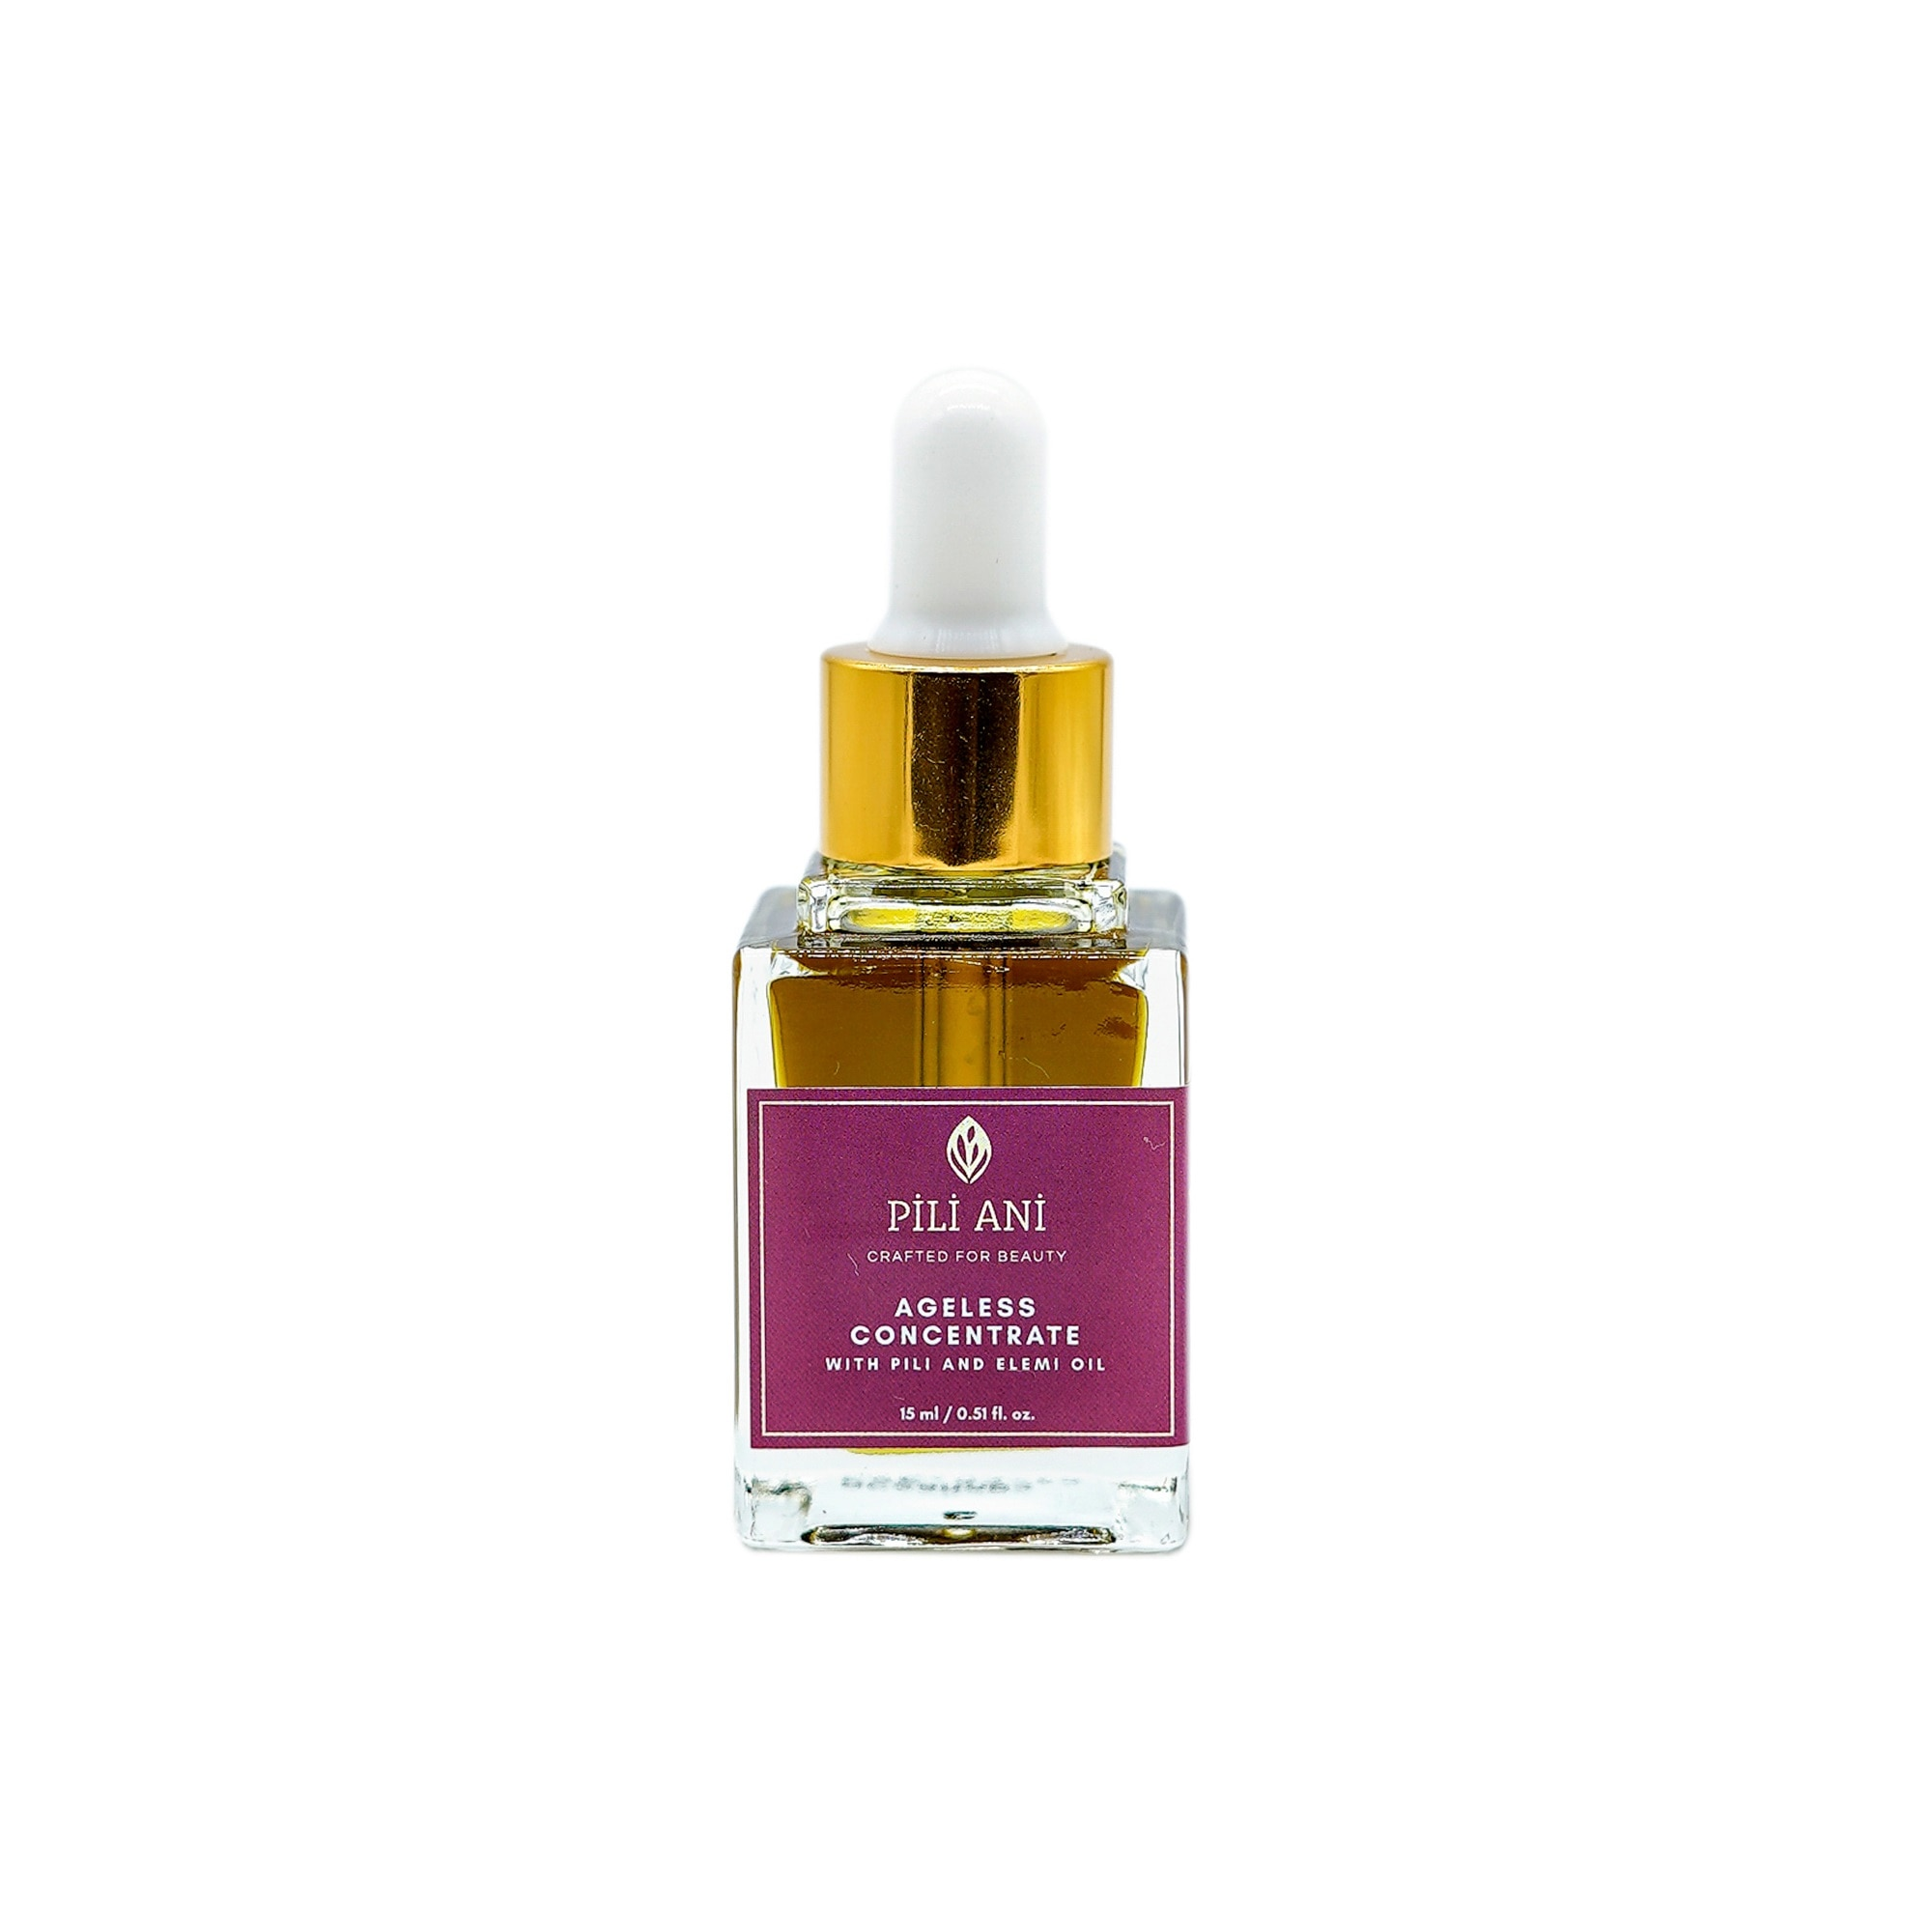 PILIAgeless Concentrate 15mL,Facial Treatment